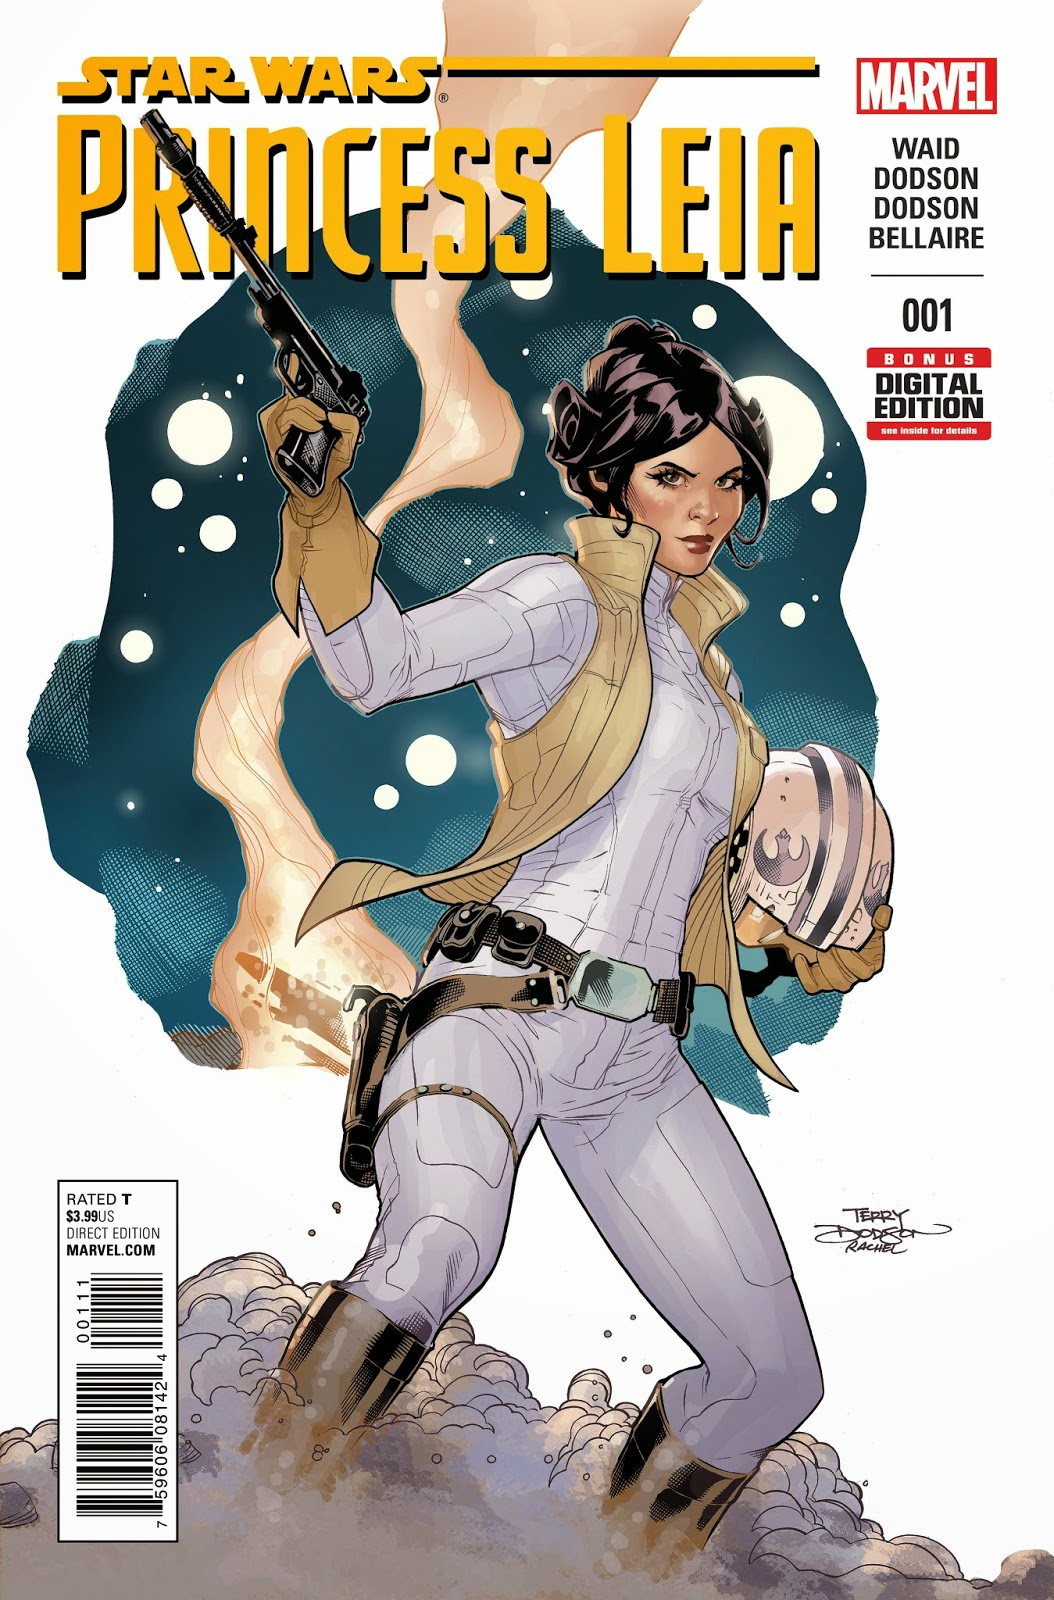 http://www.newsarama.com/23650-princess-leia-1-exclusive-preview.html